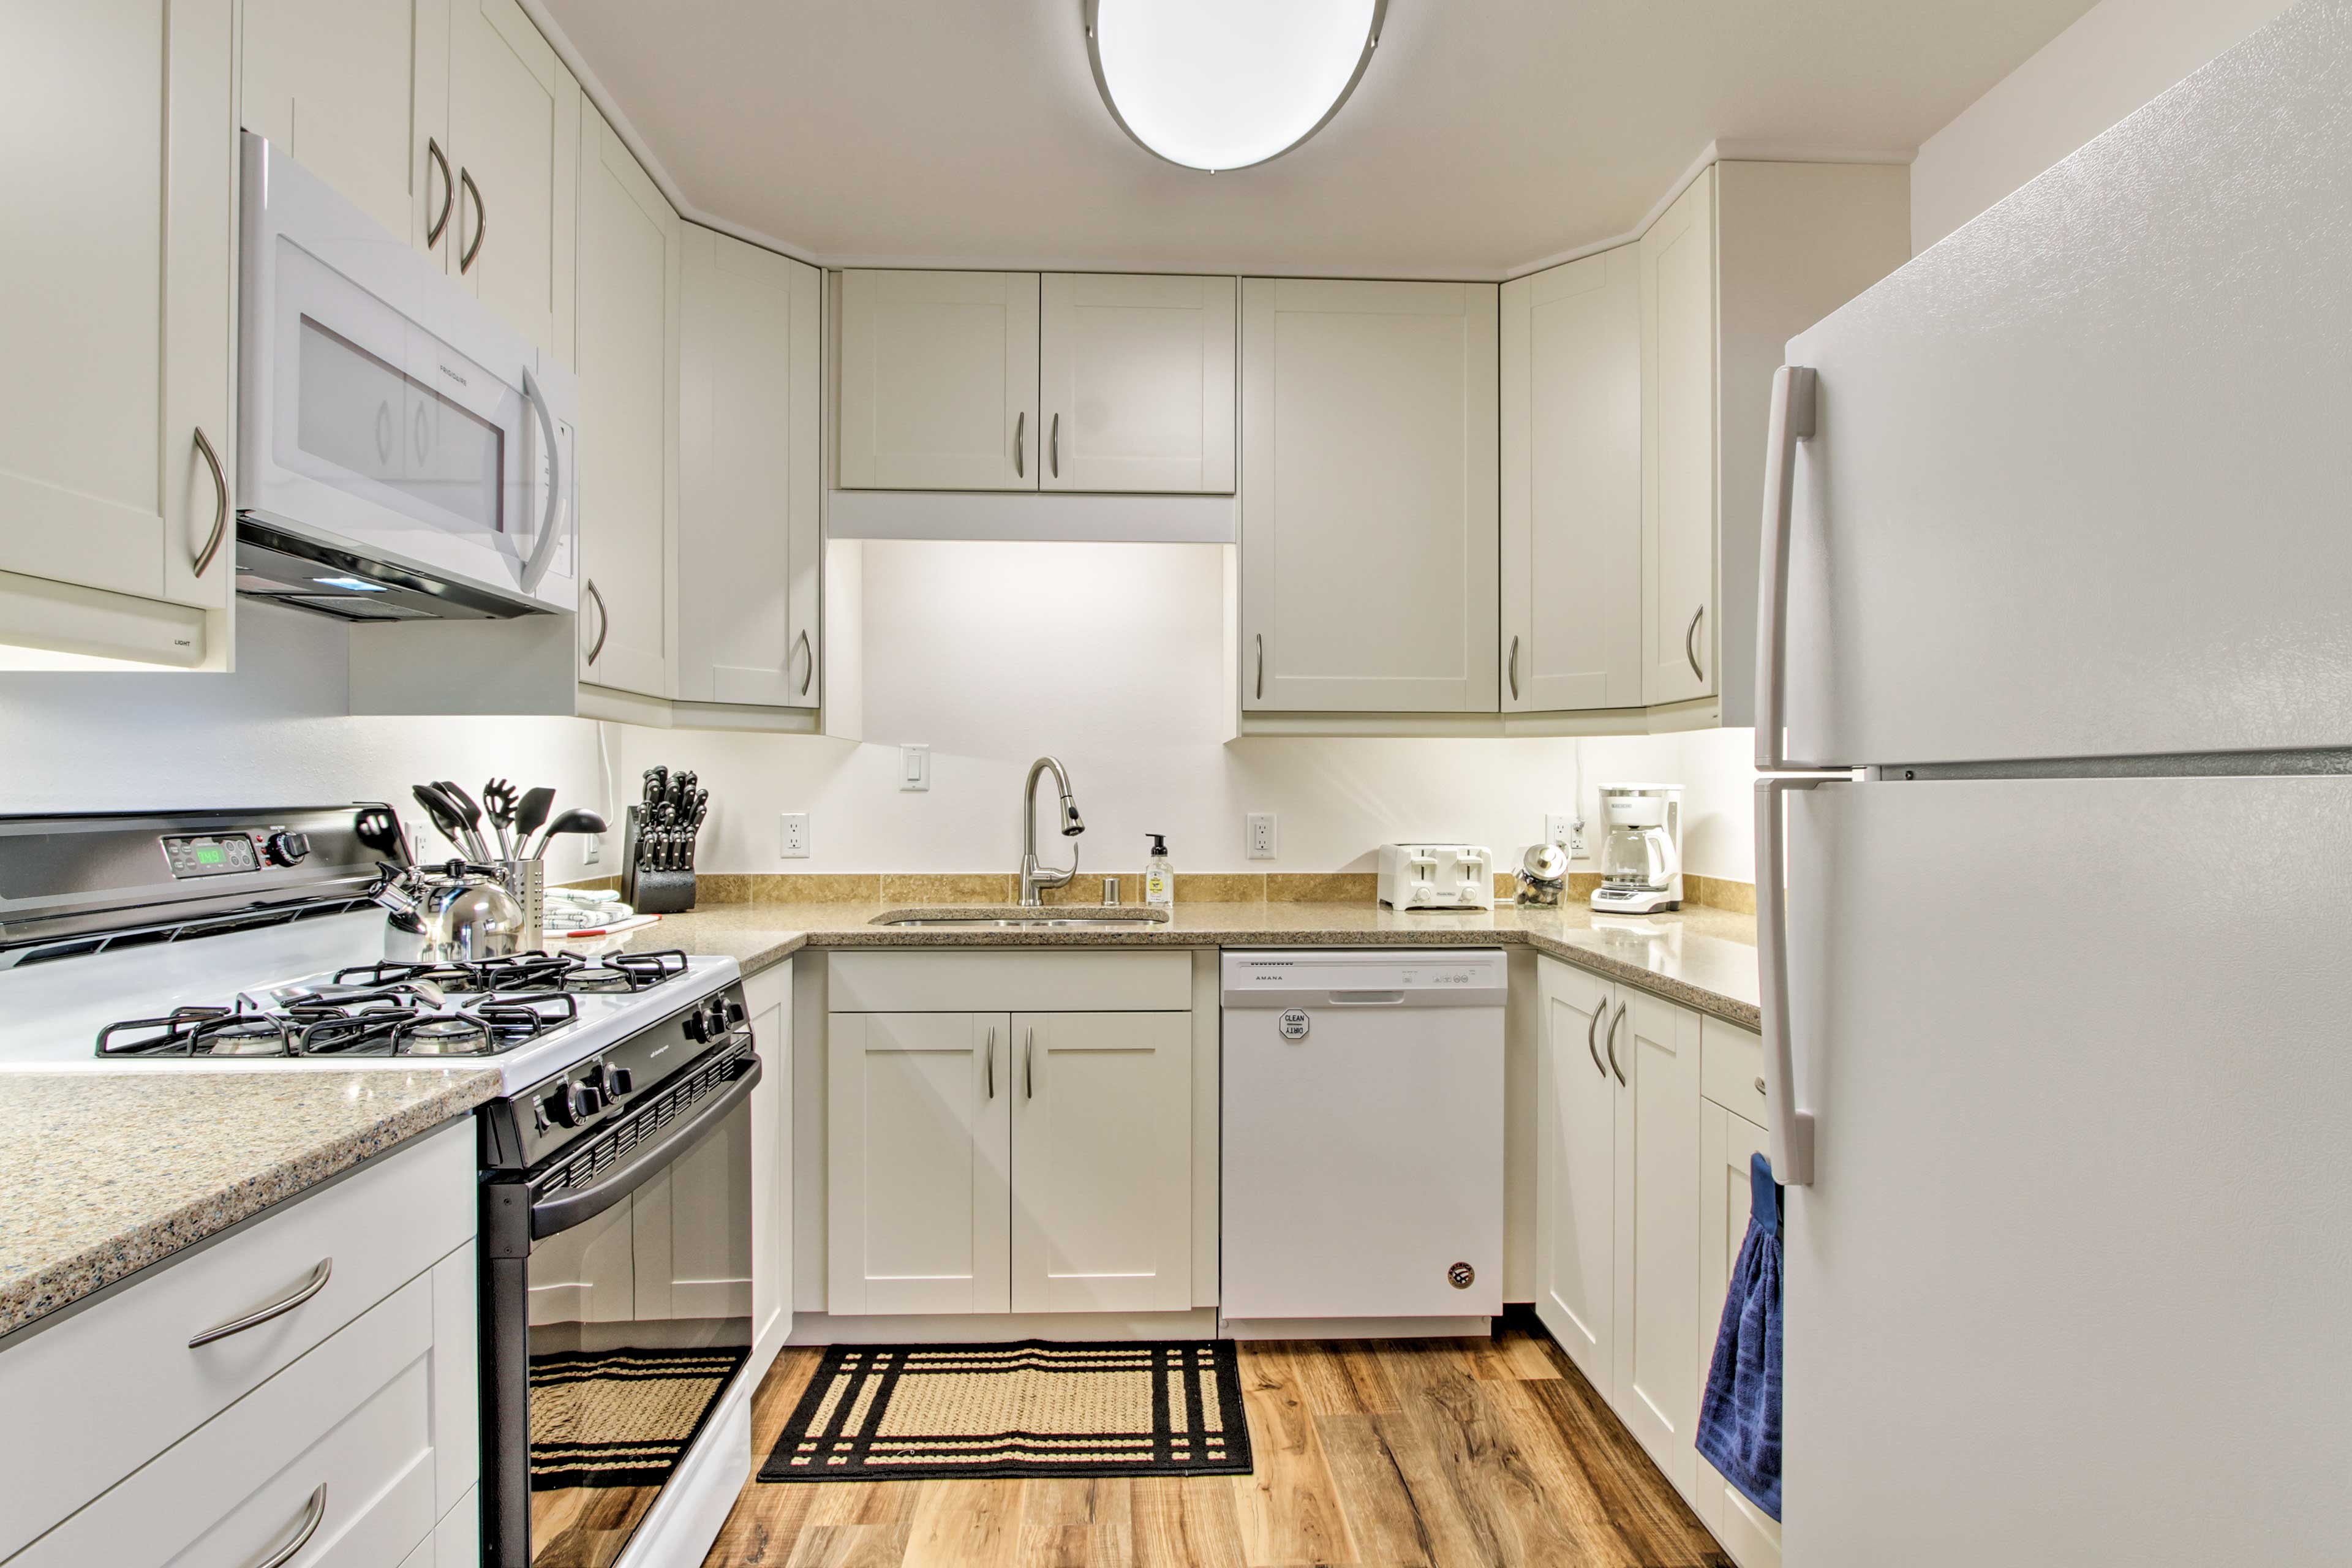 You'll have all the essential appliances and kitchenware needed.